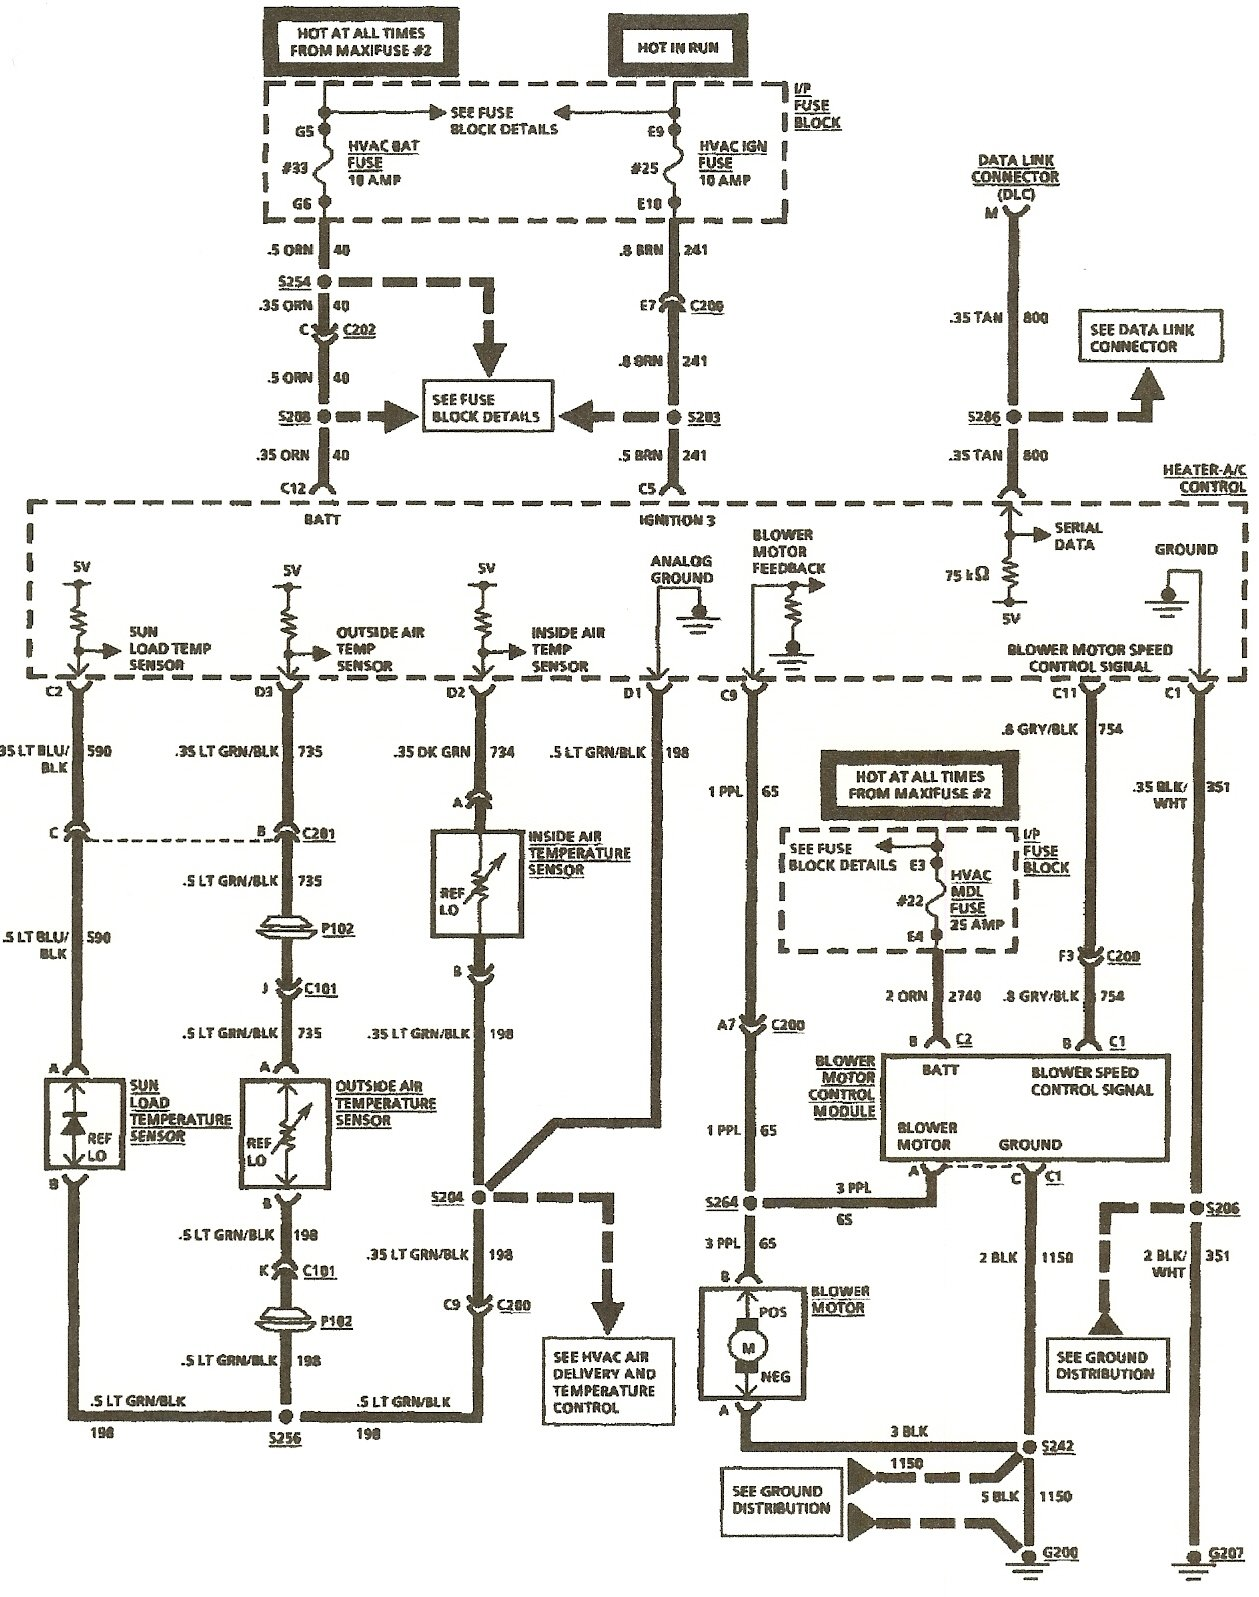 diagram] 1990 fleetwood southwind wiring diagram full version hd quality wiring  diagram - diagrams.pachuka.it  pachuka.it